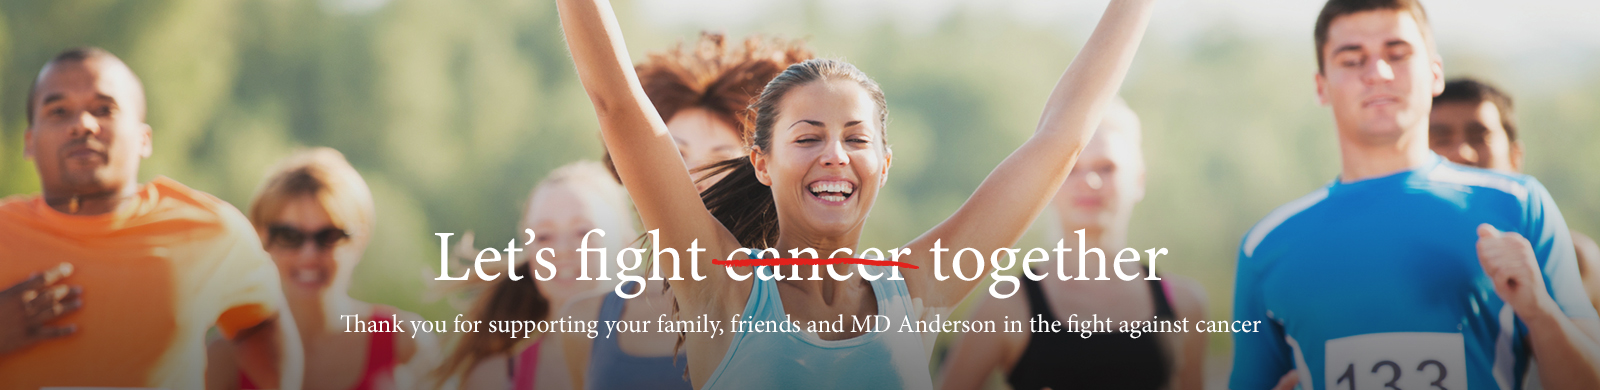 Let's fight cancer together. Thank you for supporting your family, friends and MD Anderson in the fight against cancer.